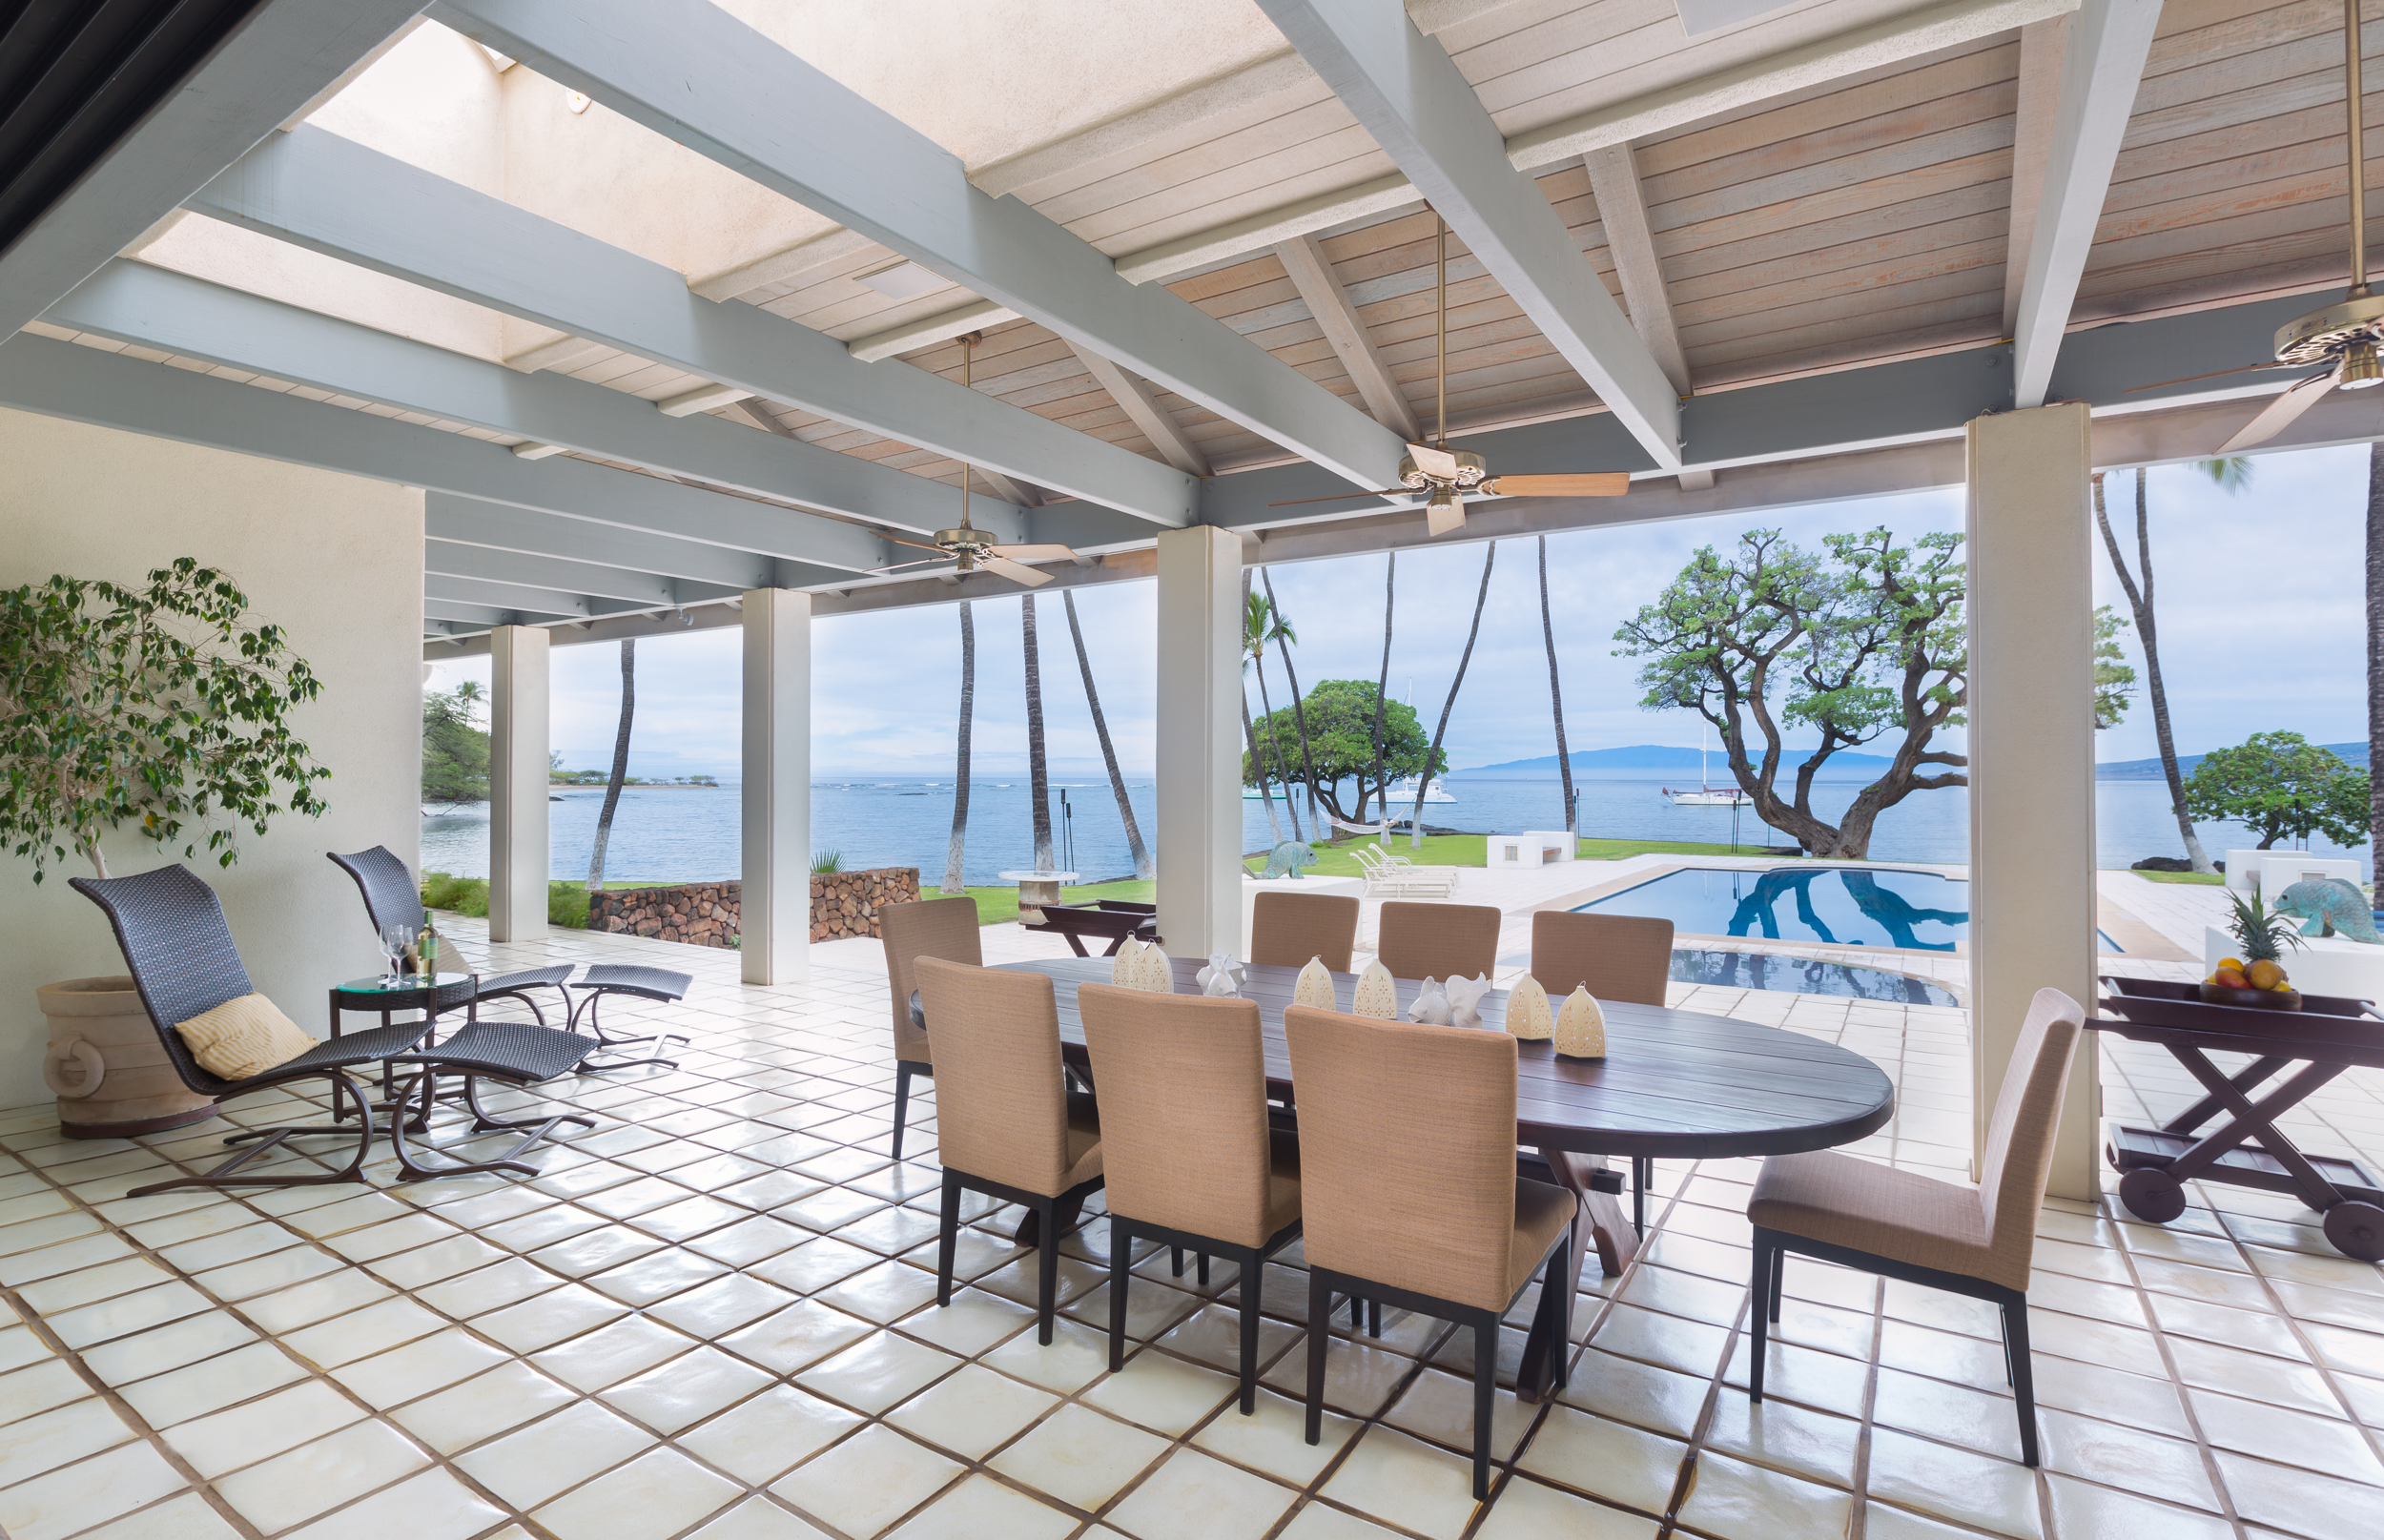 Covered outdoor lanais provide the best of outdoor living and entertaining at this  oceanfront home.